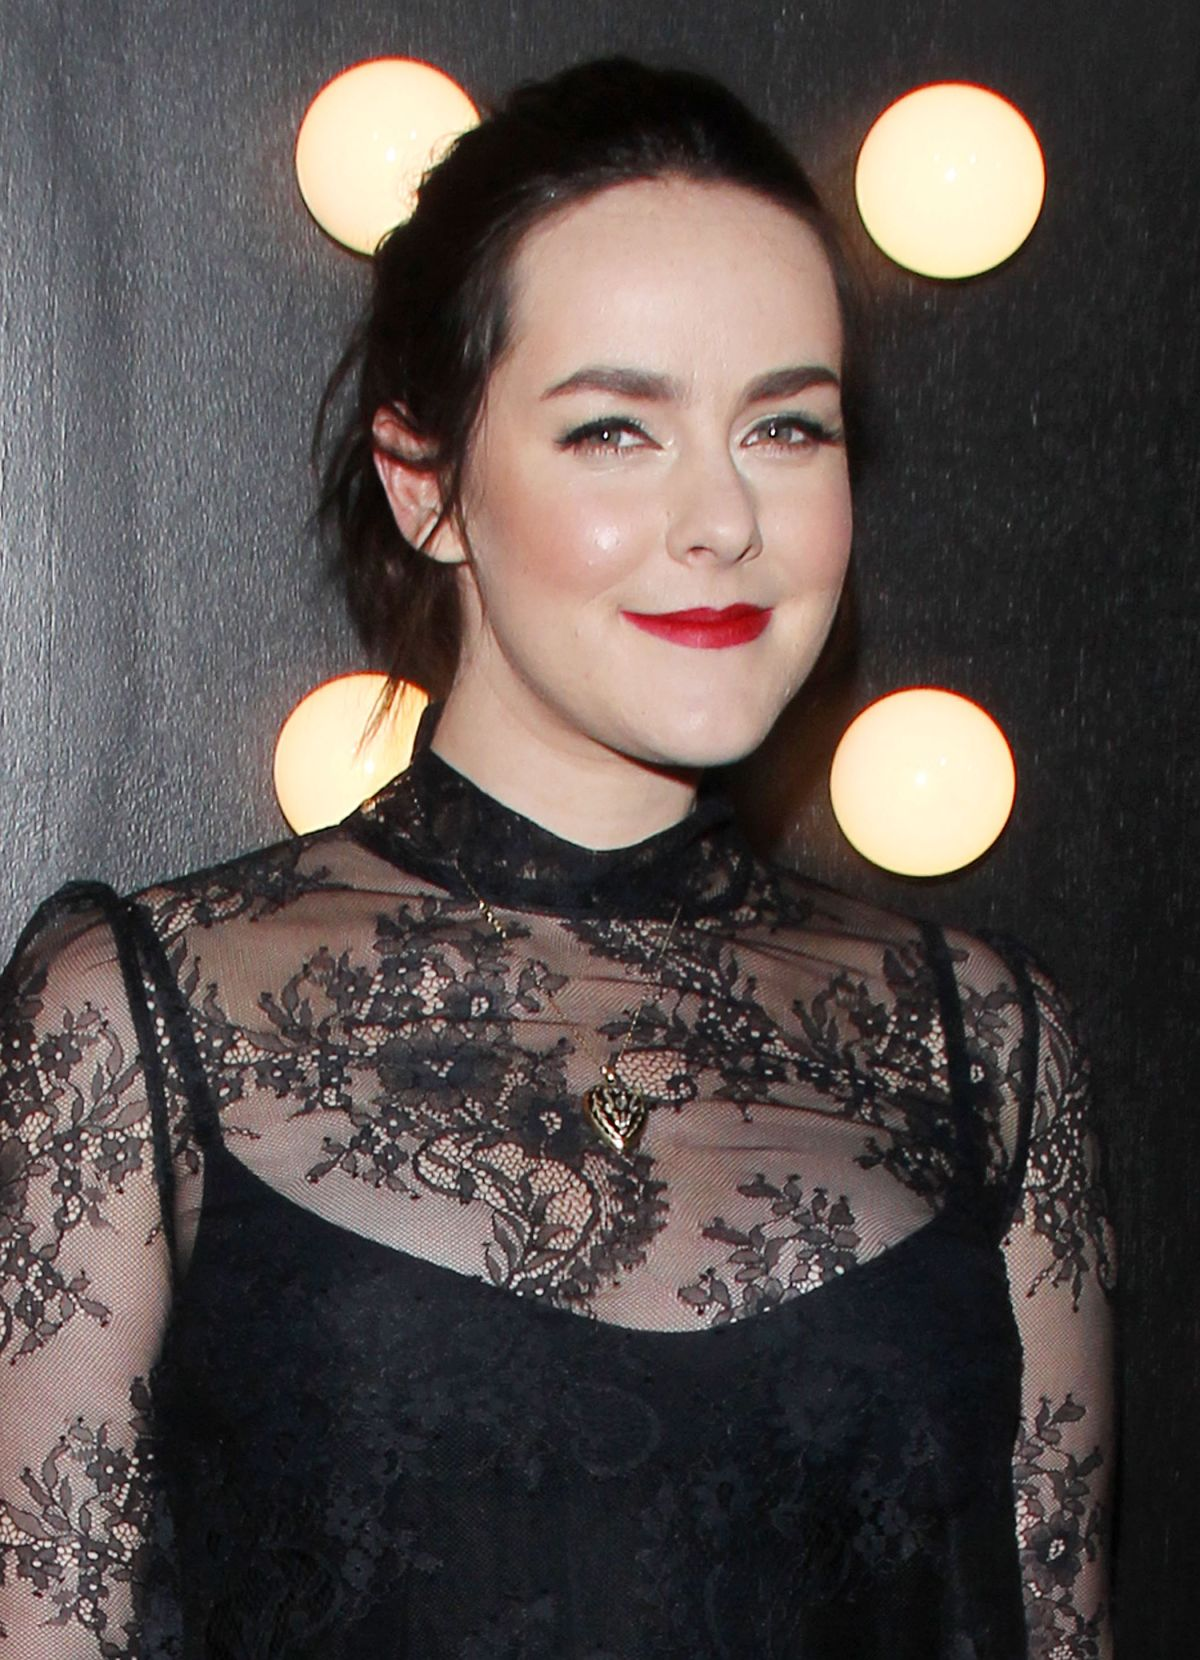 JENA MALONE at 'The Neon Demon' Premiere in Los Angeles 06/14/2016